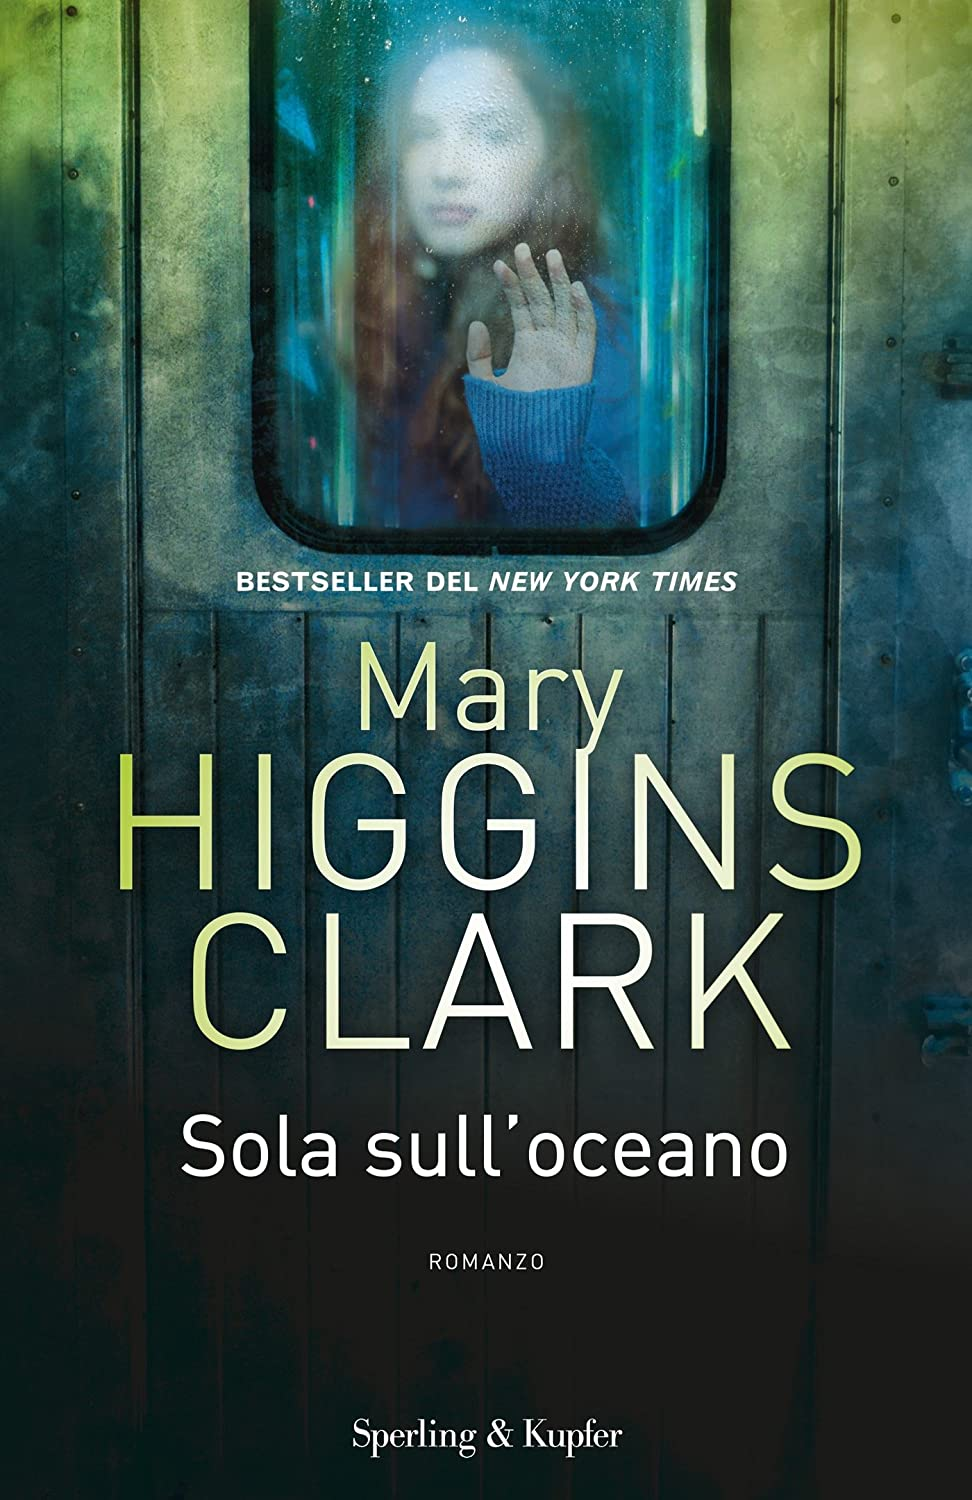 Sola sulloceano (Italian Edition) eBook: Mary Higgins Clark ...